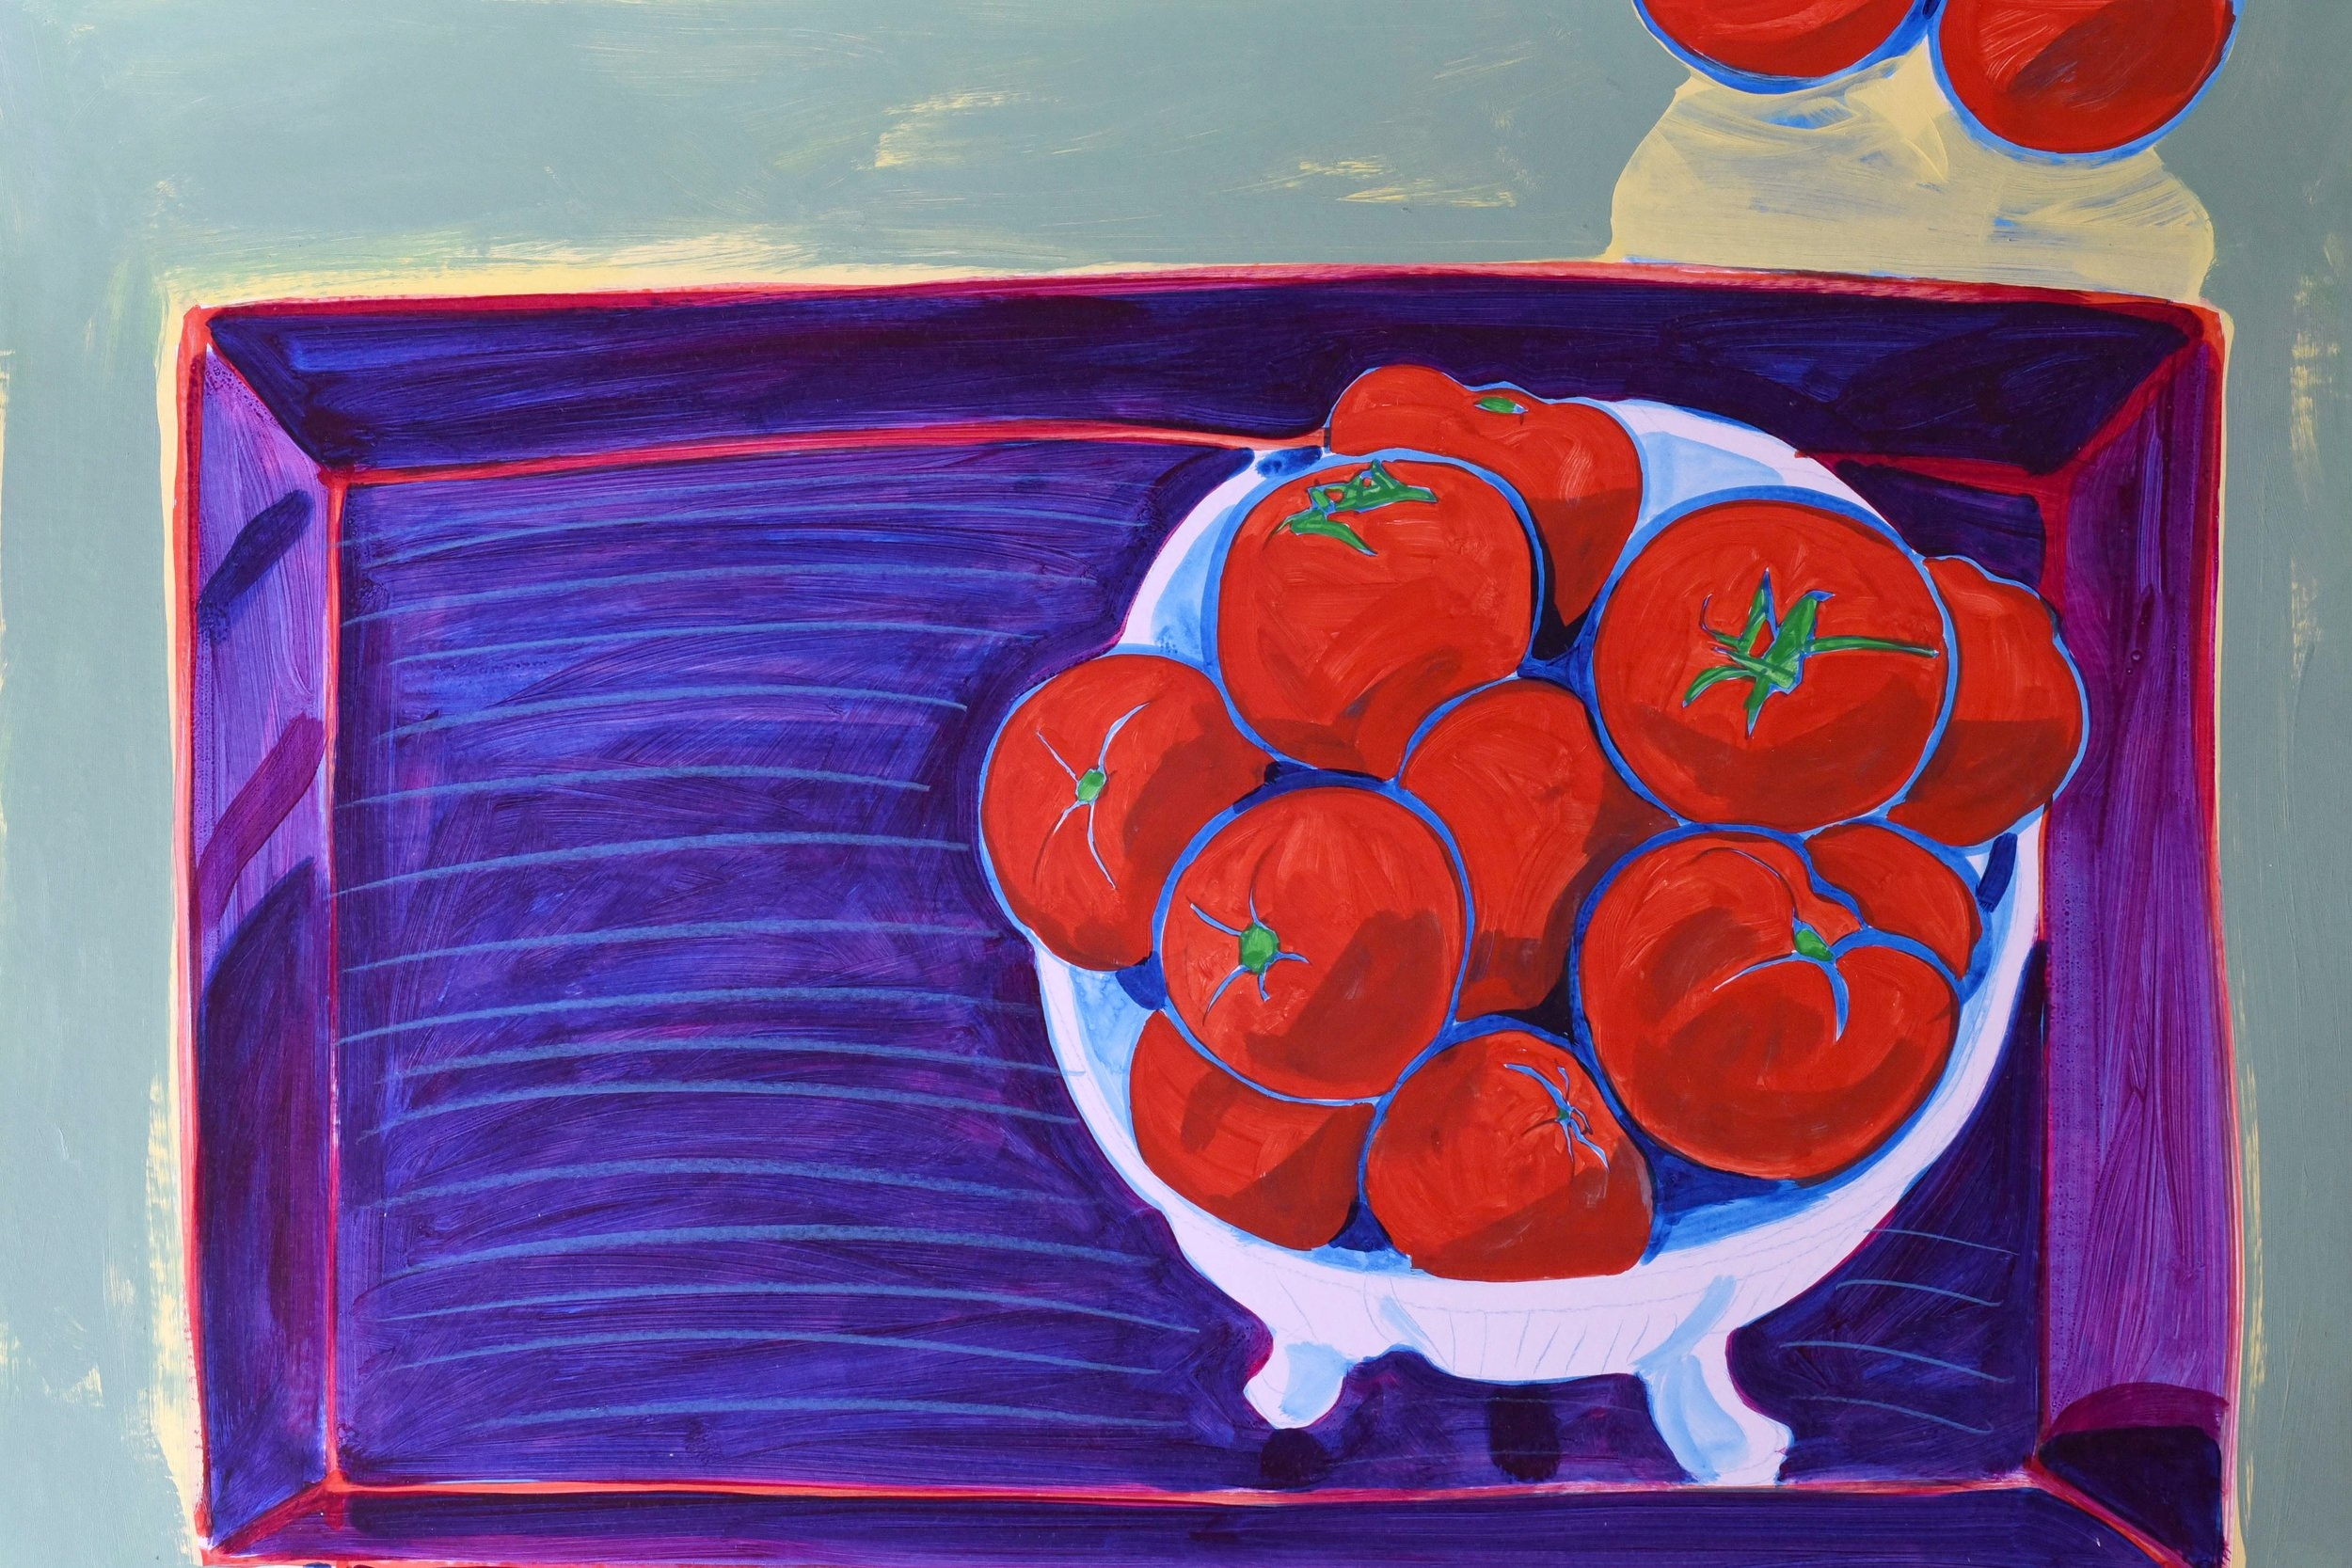 Still life of tomatoes in a bowl with ultramarine background on a lacquered tray